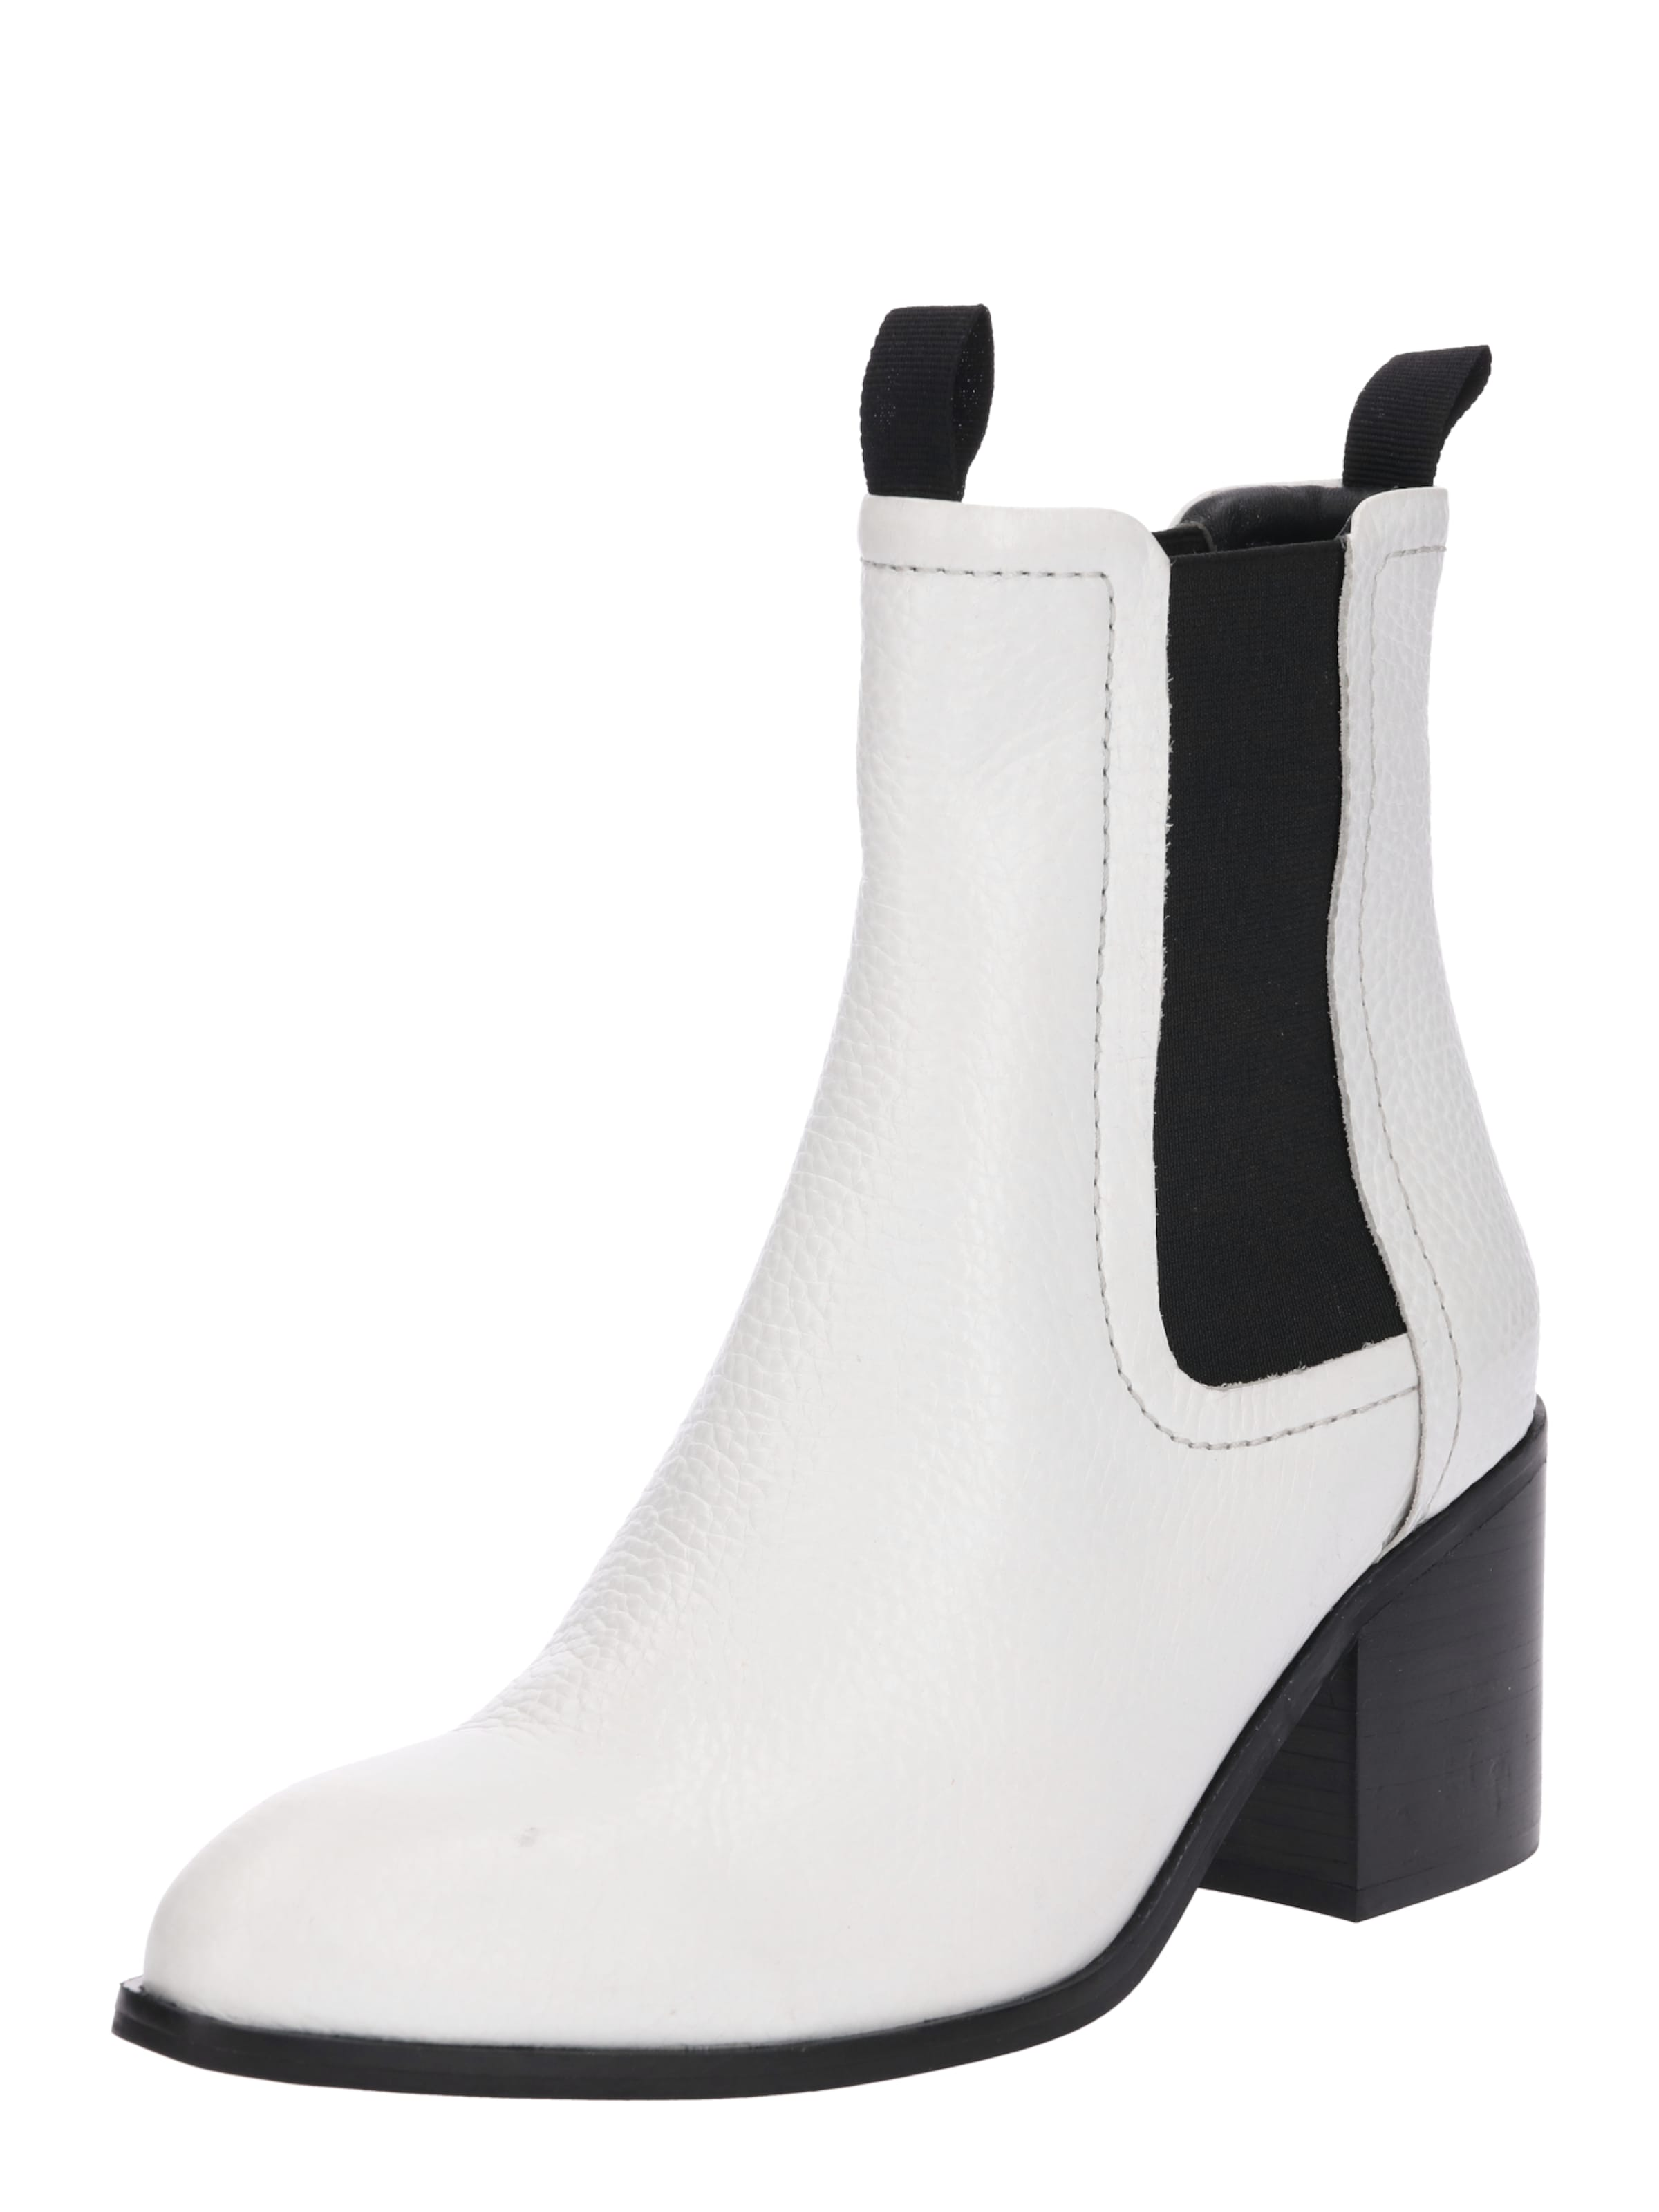 Chelsea Blanc You 'hayley' En About Boots kN8PXZ0Onw